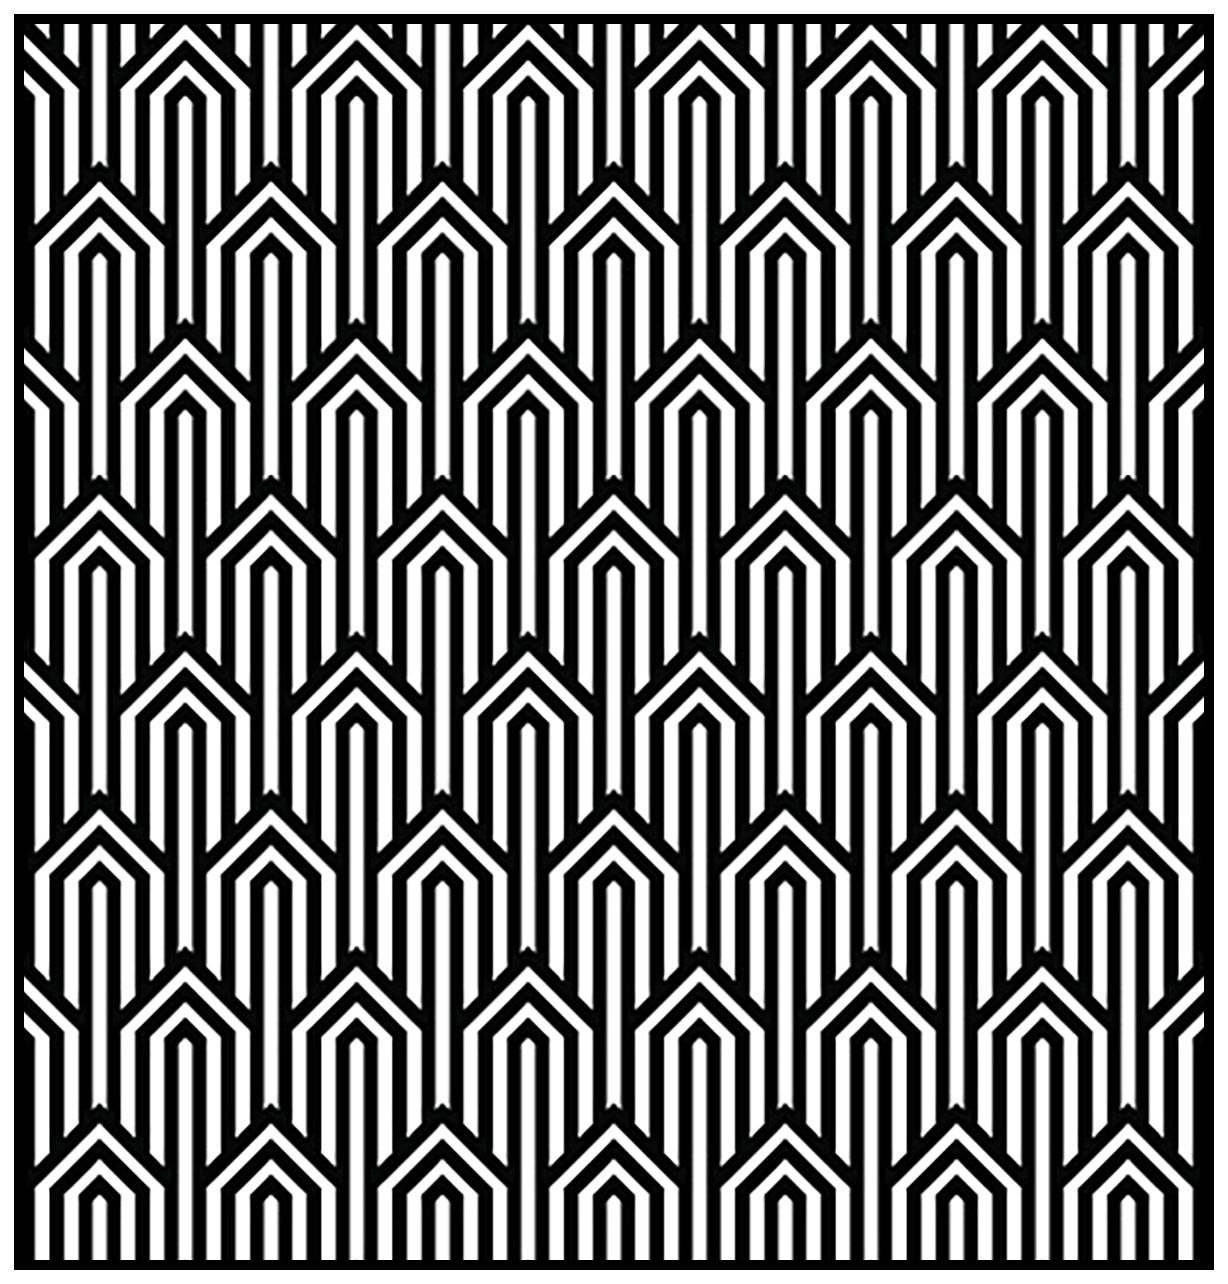 Geometric Patterns Art Deco 1 Art Deco Coloring Pages For Adults